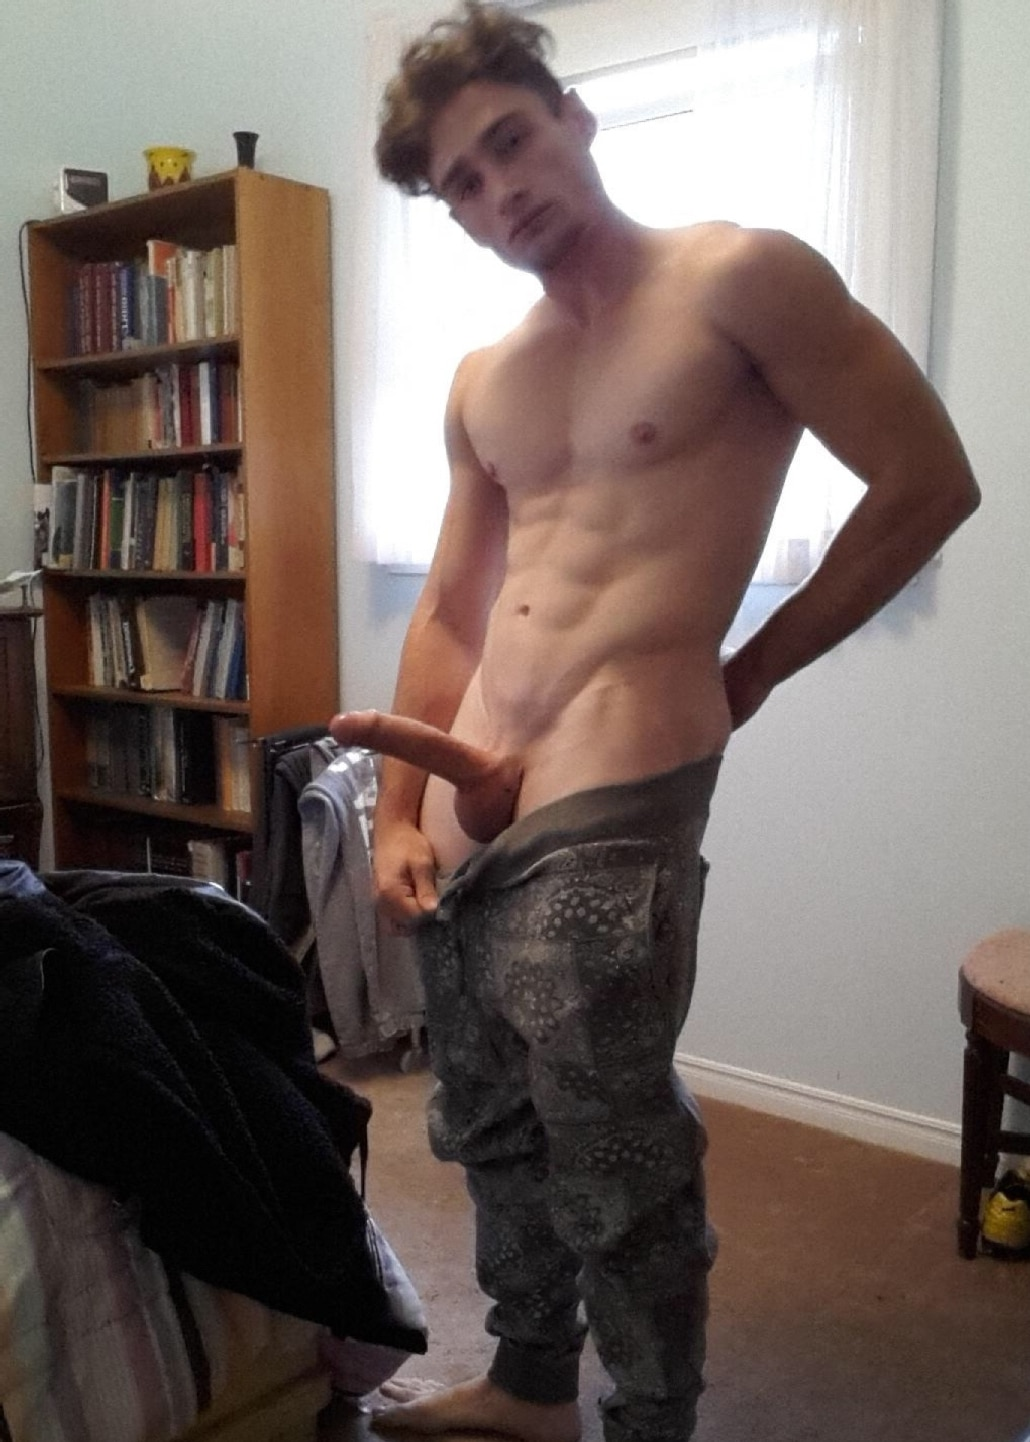 Nude Stud Showing His Big Hard Penis – Self Picture Boys